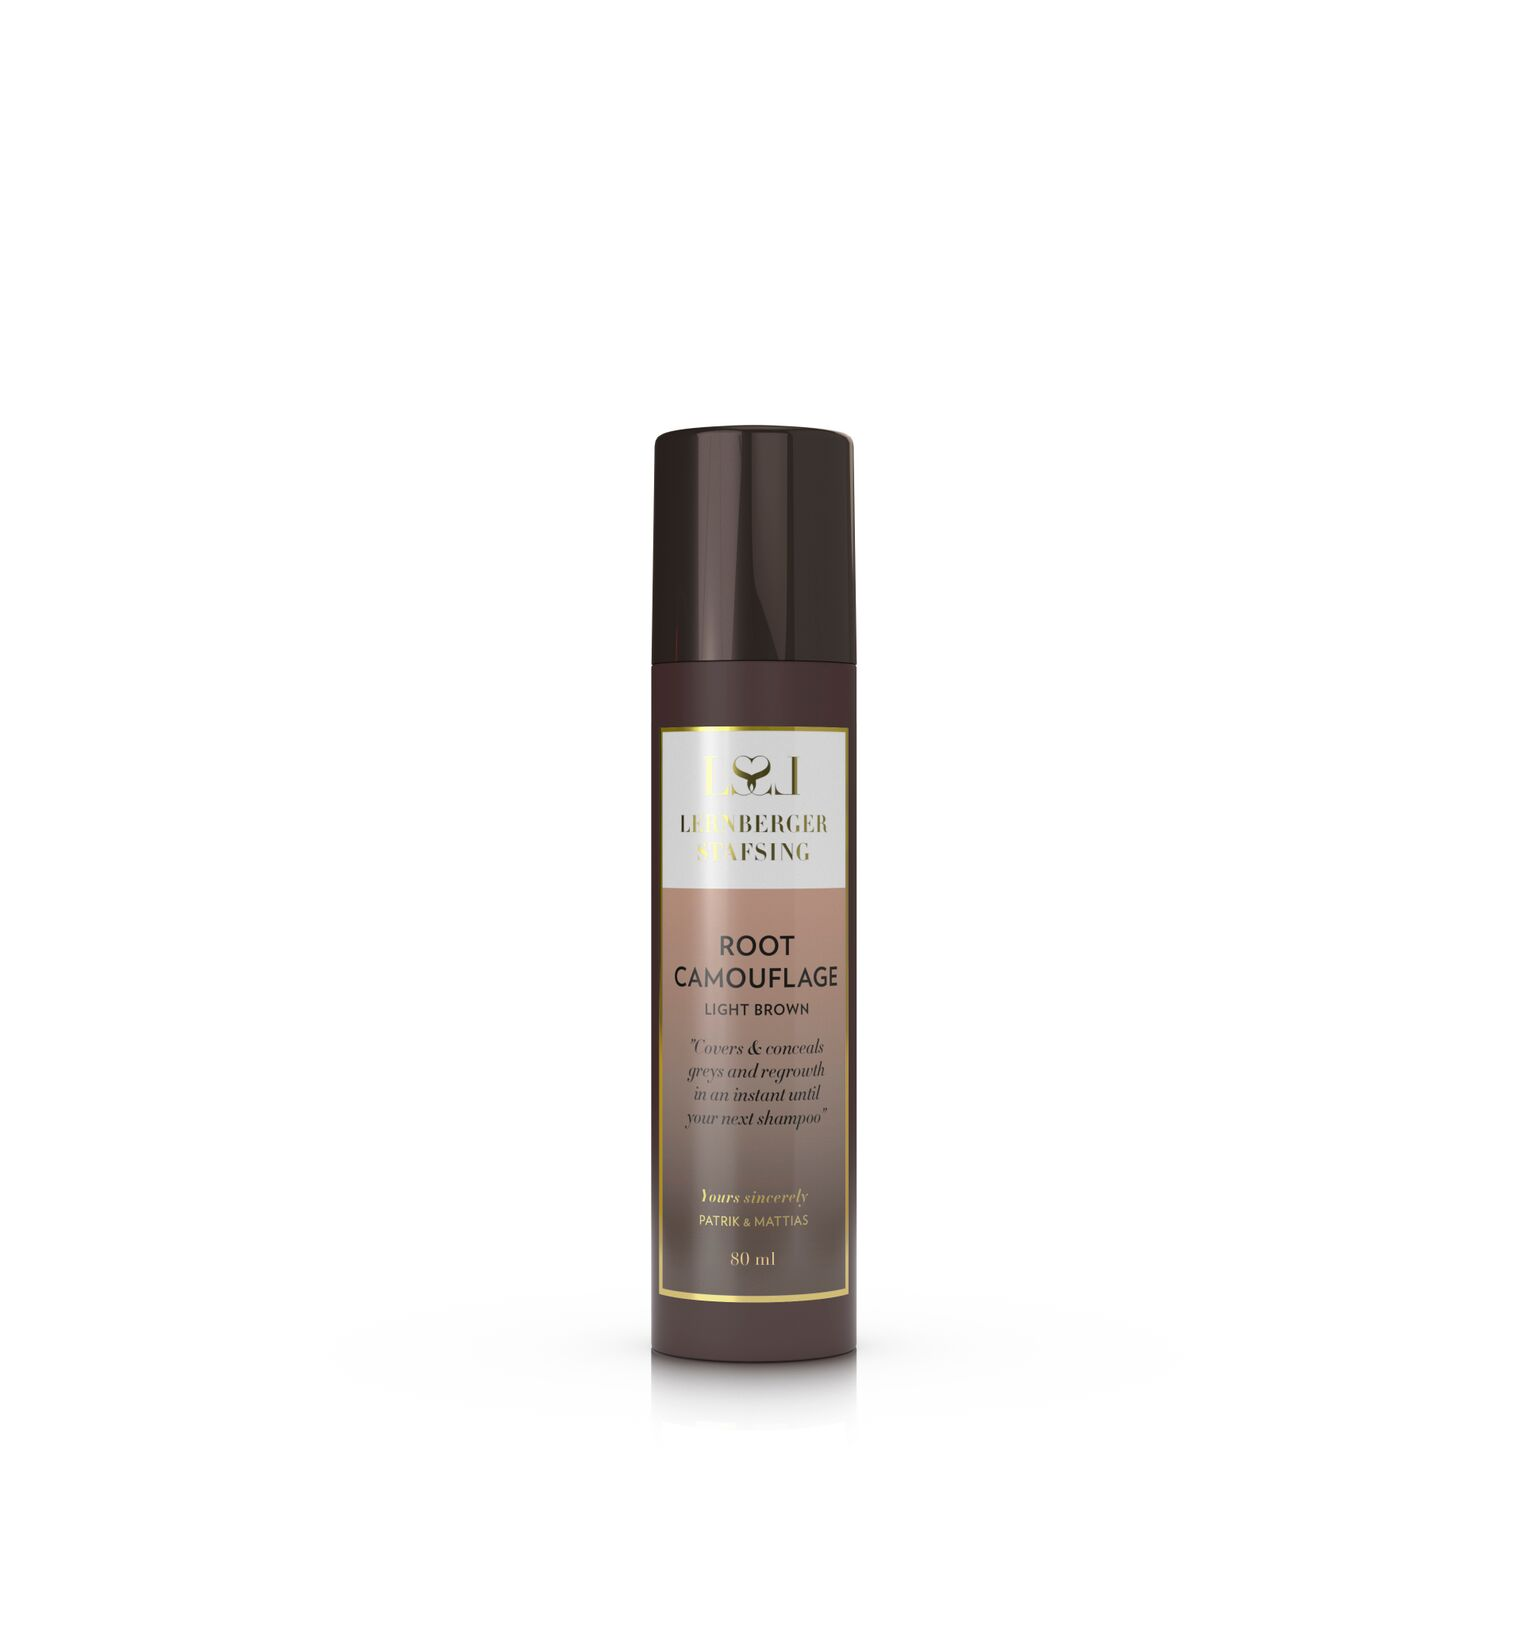 Lernberger Stafsing Root Camouflage, light brown, 80 ml